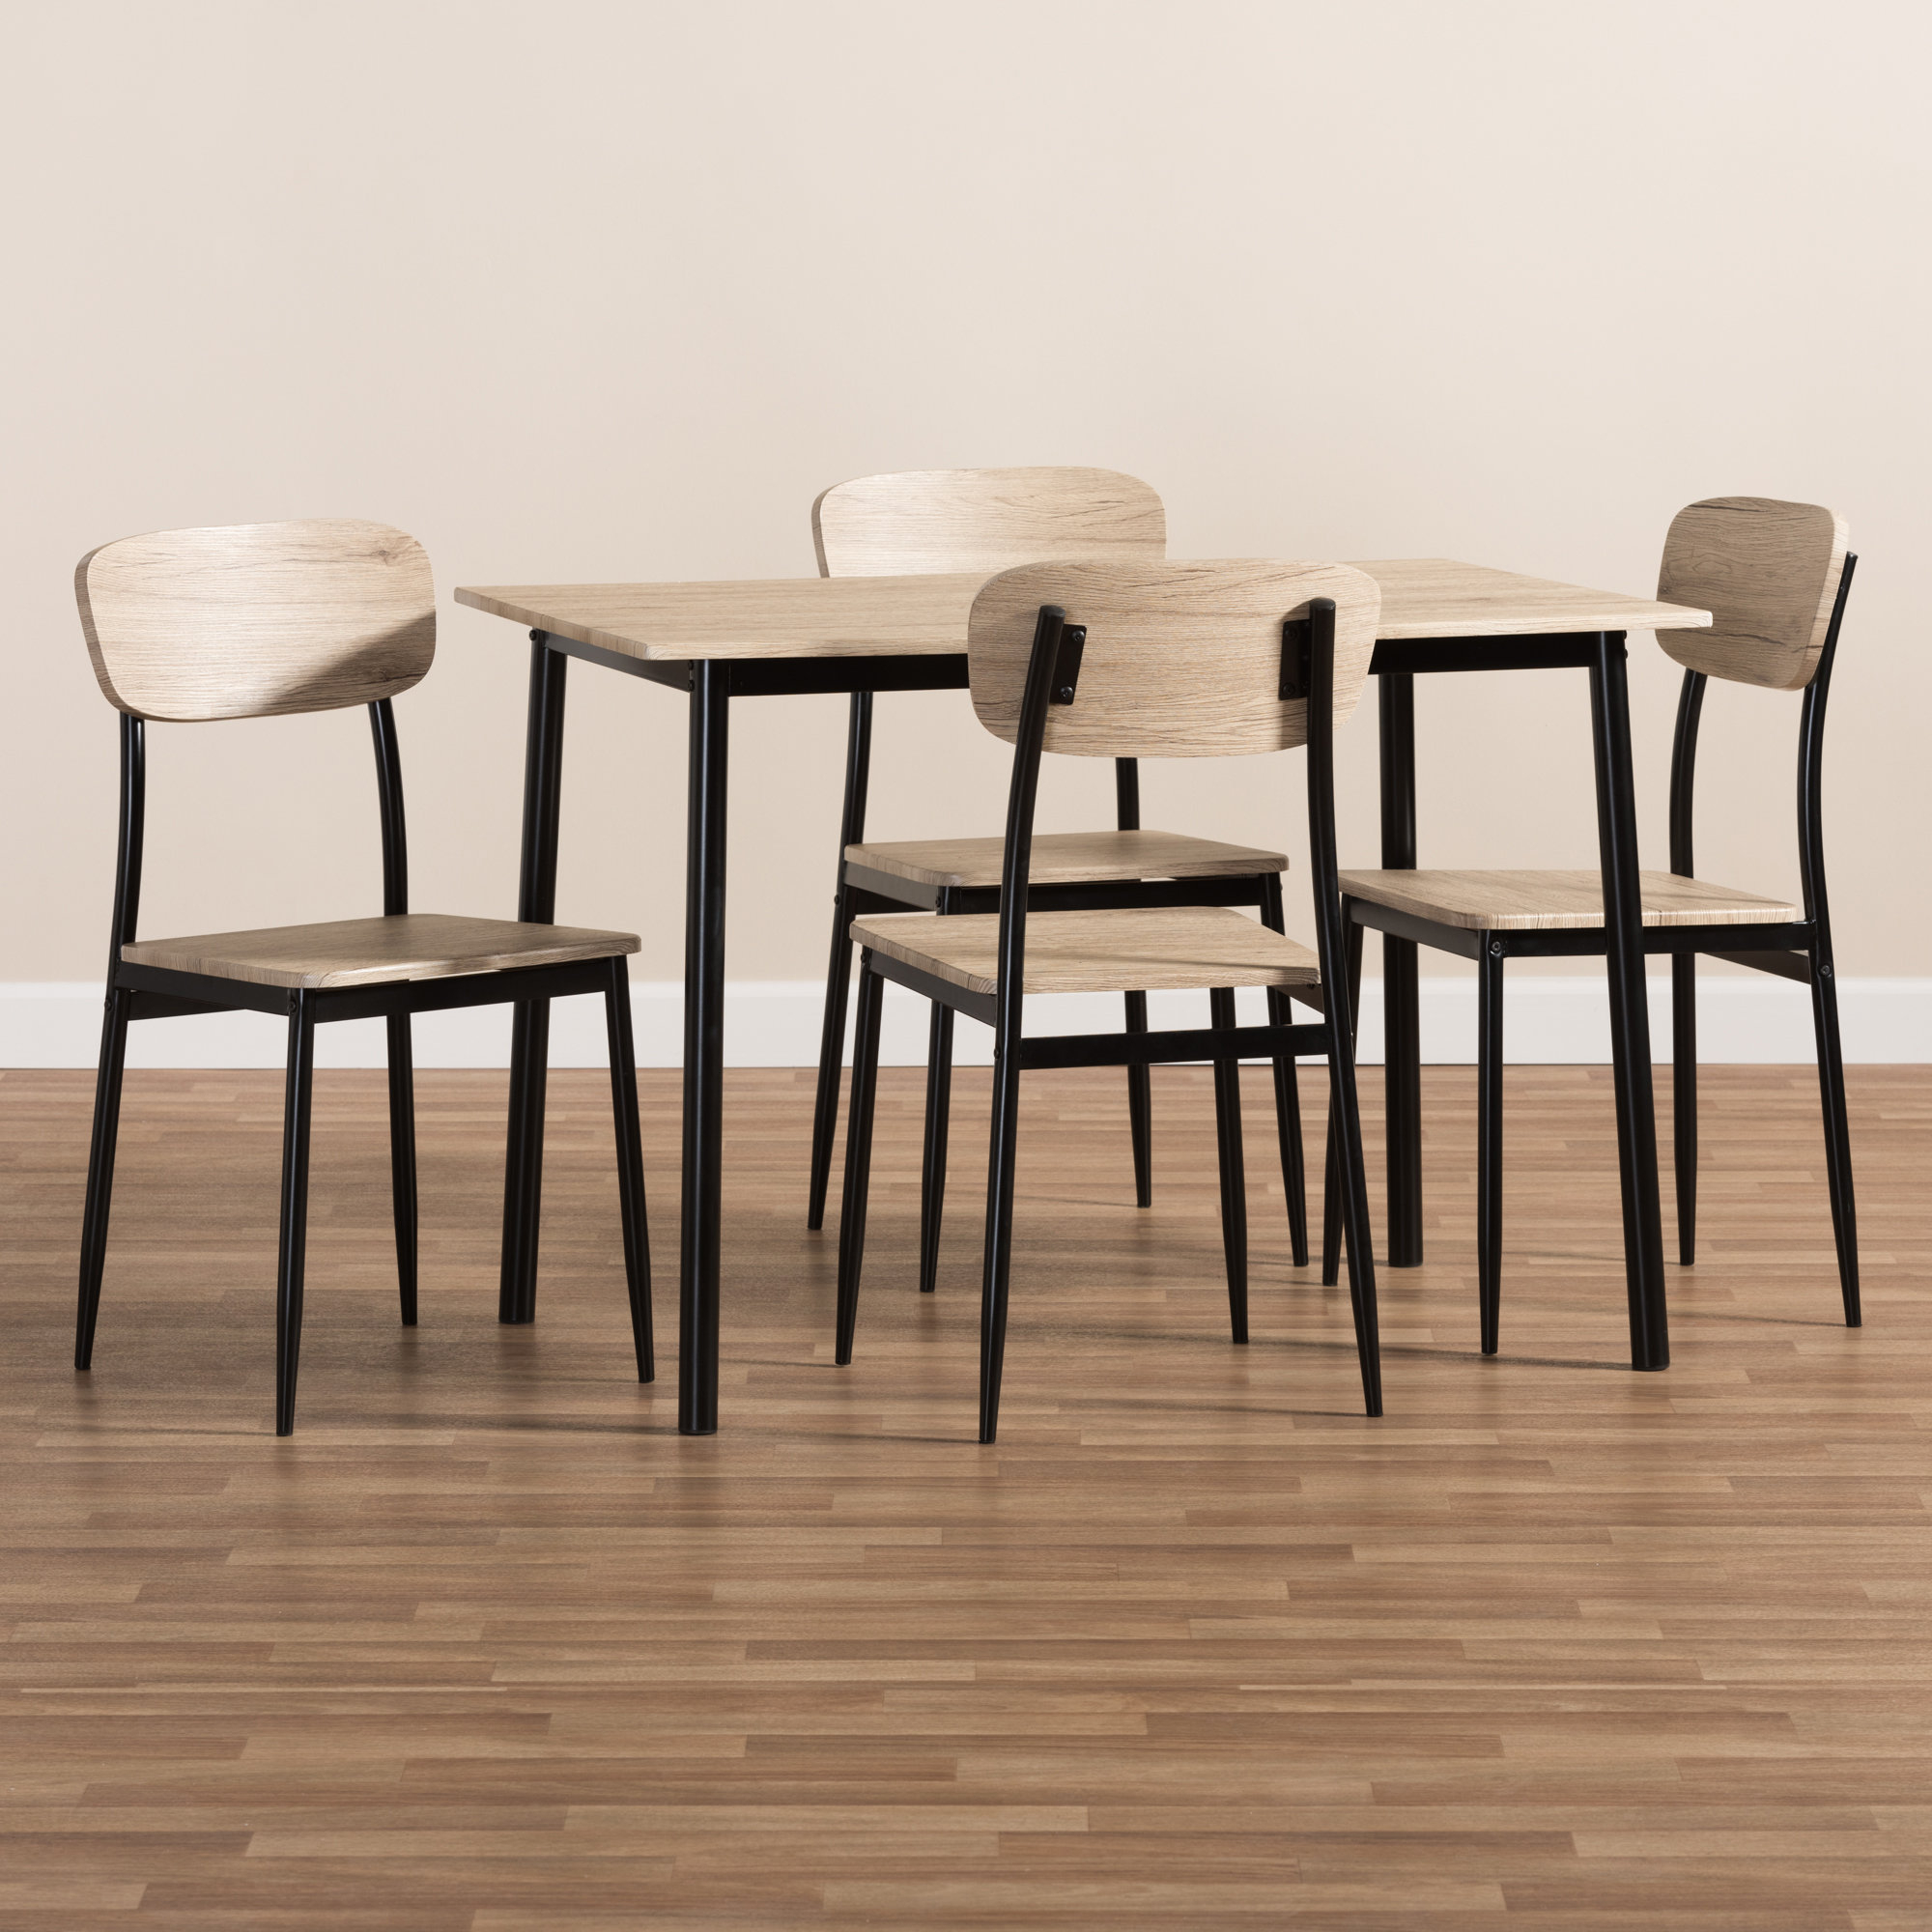 Joss & Main For Popular Wiggs 5 Piece Dining Sets (View 8 of 25)